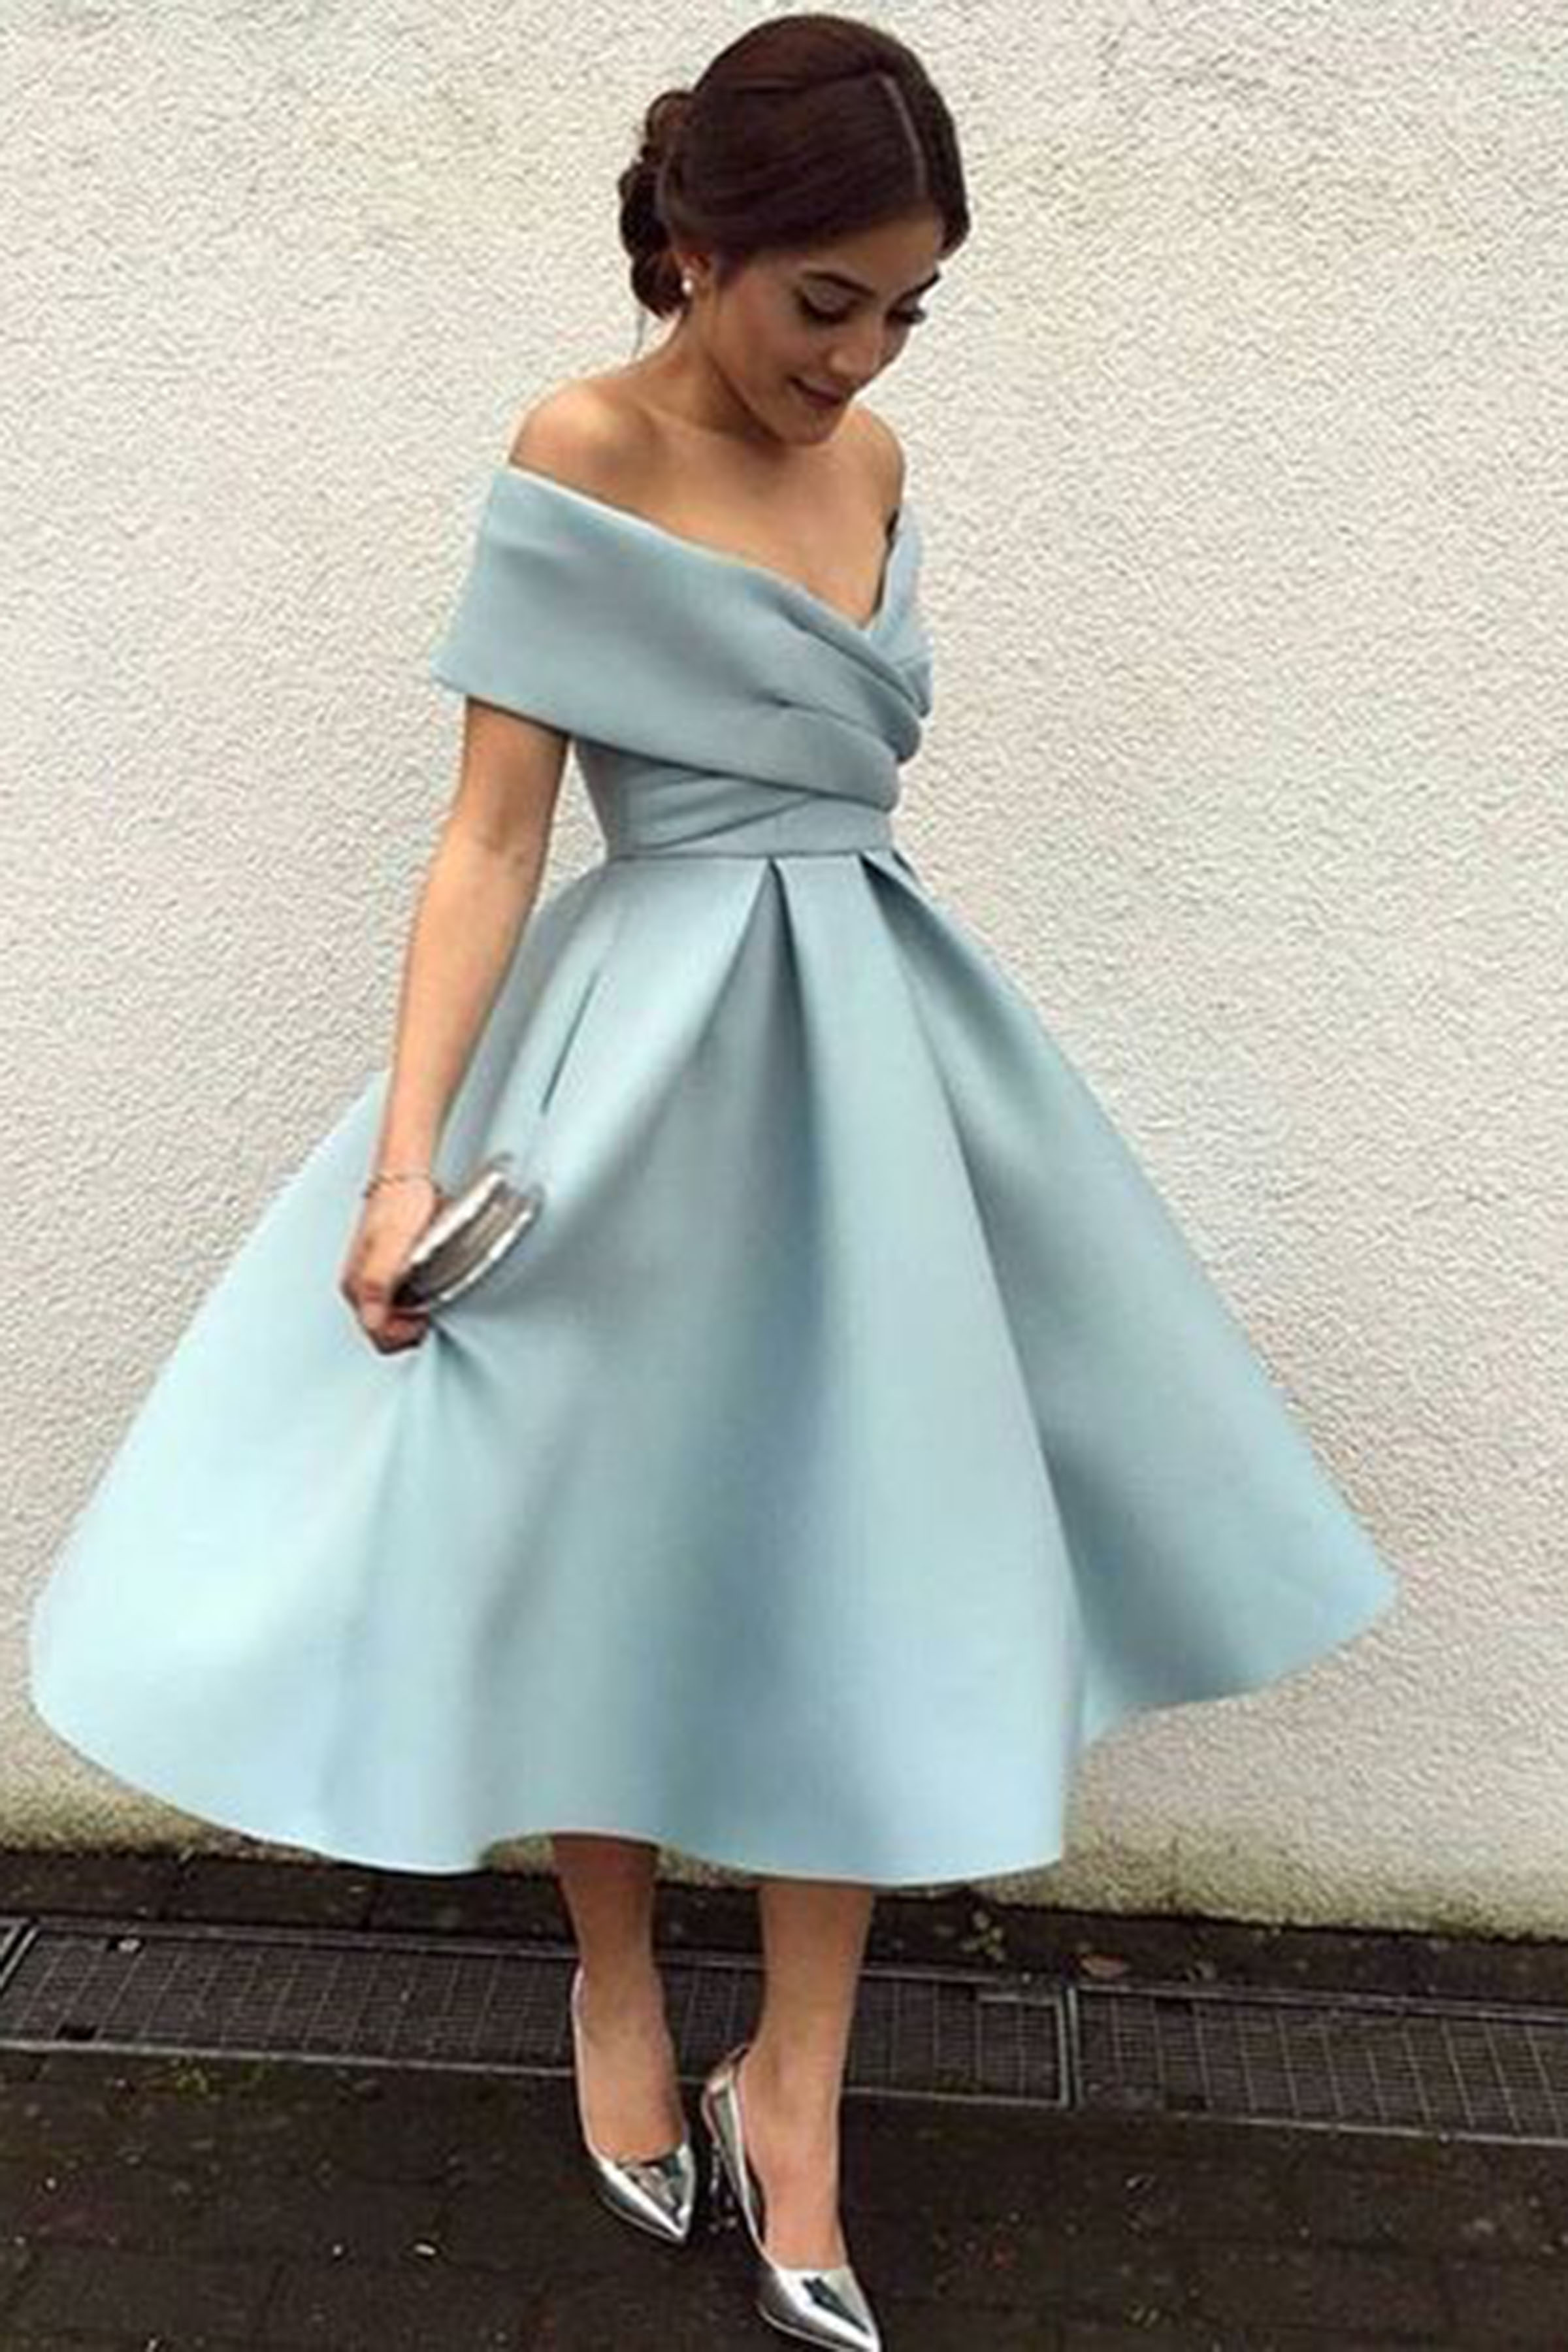 d7f99862db6 Sky Blue Short Homecoming Dresses - Gomes Weine AG